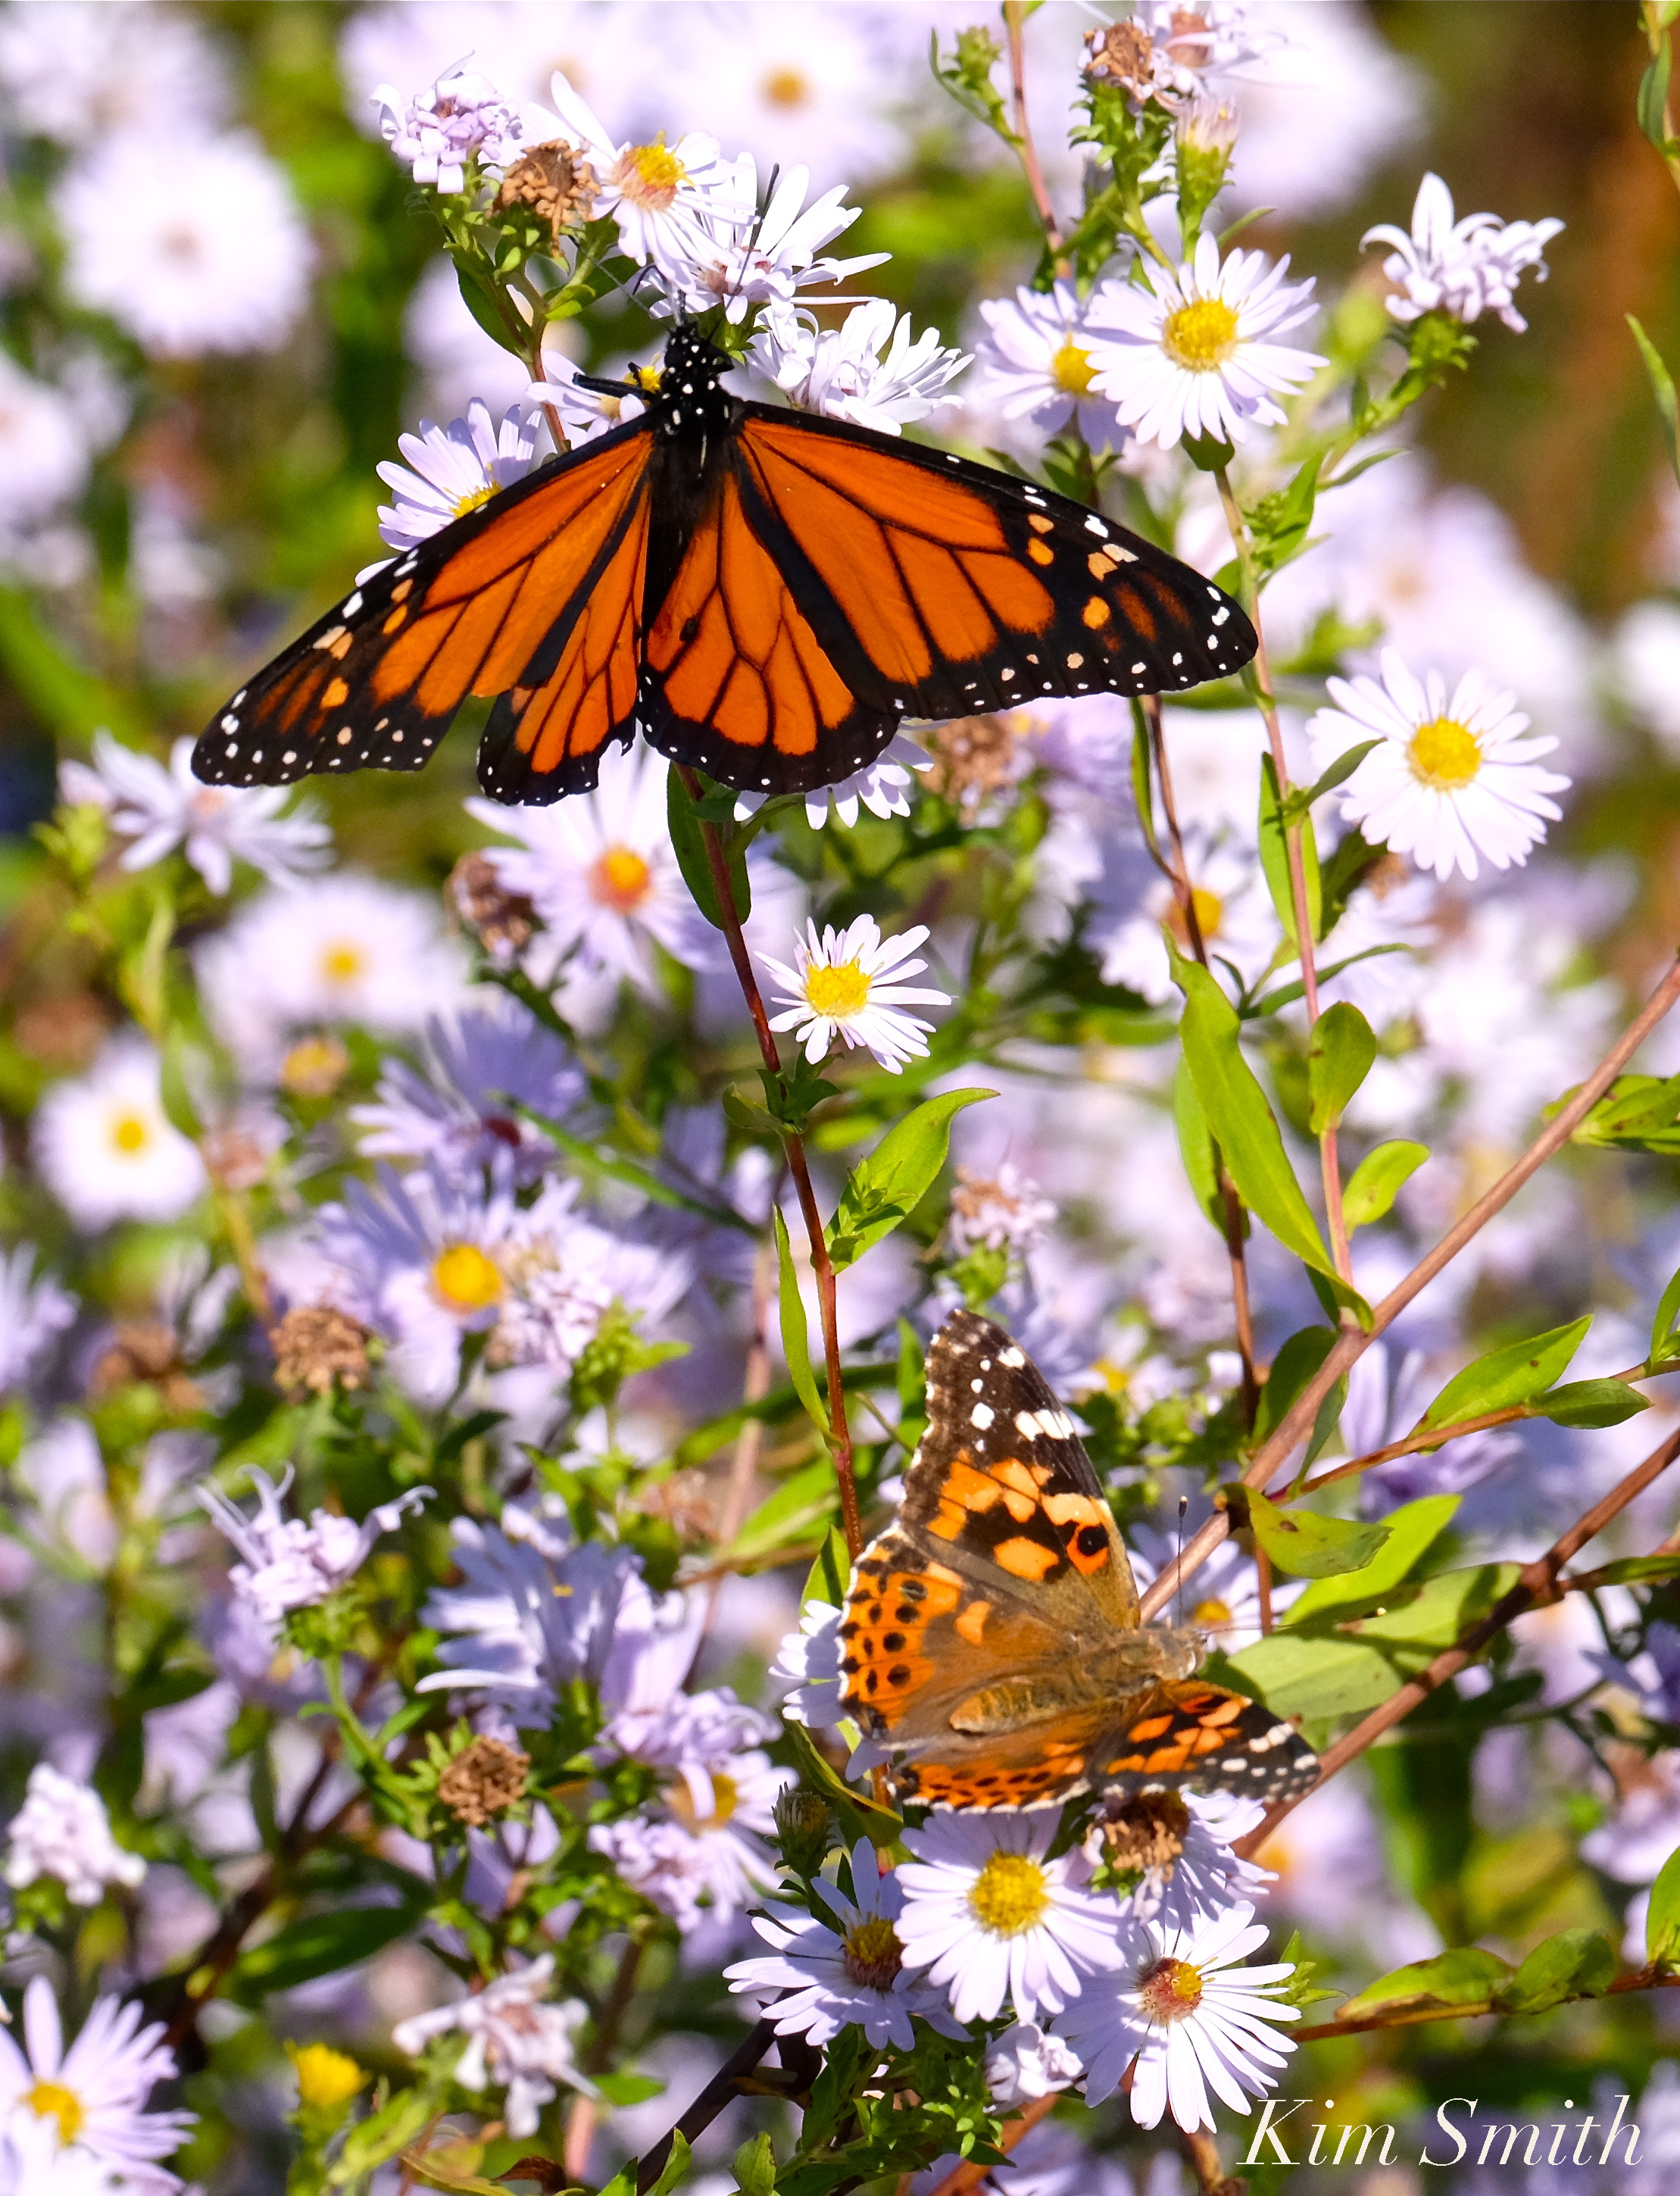 A Spectacular Painted Lady Butterfly Irruption Happening